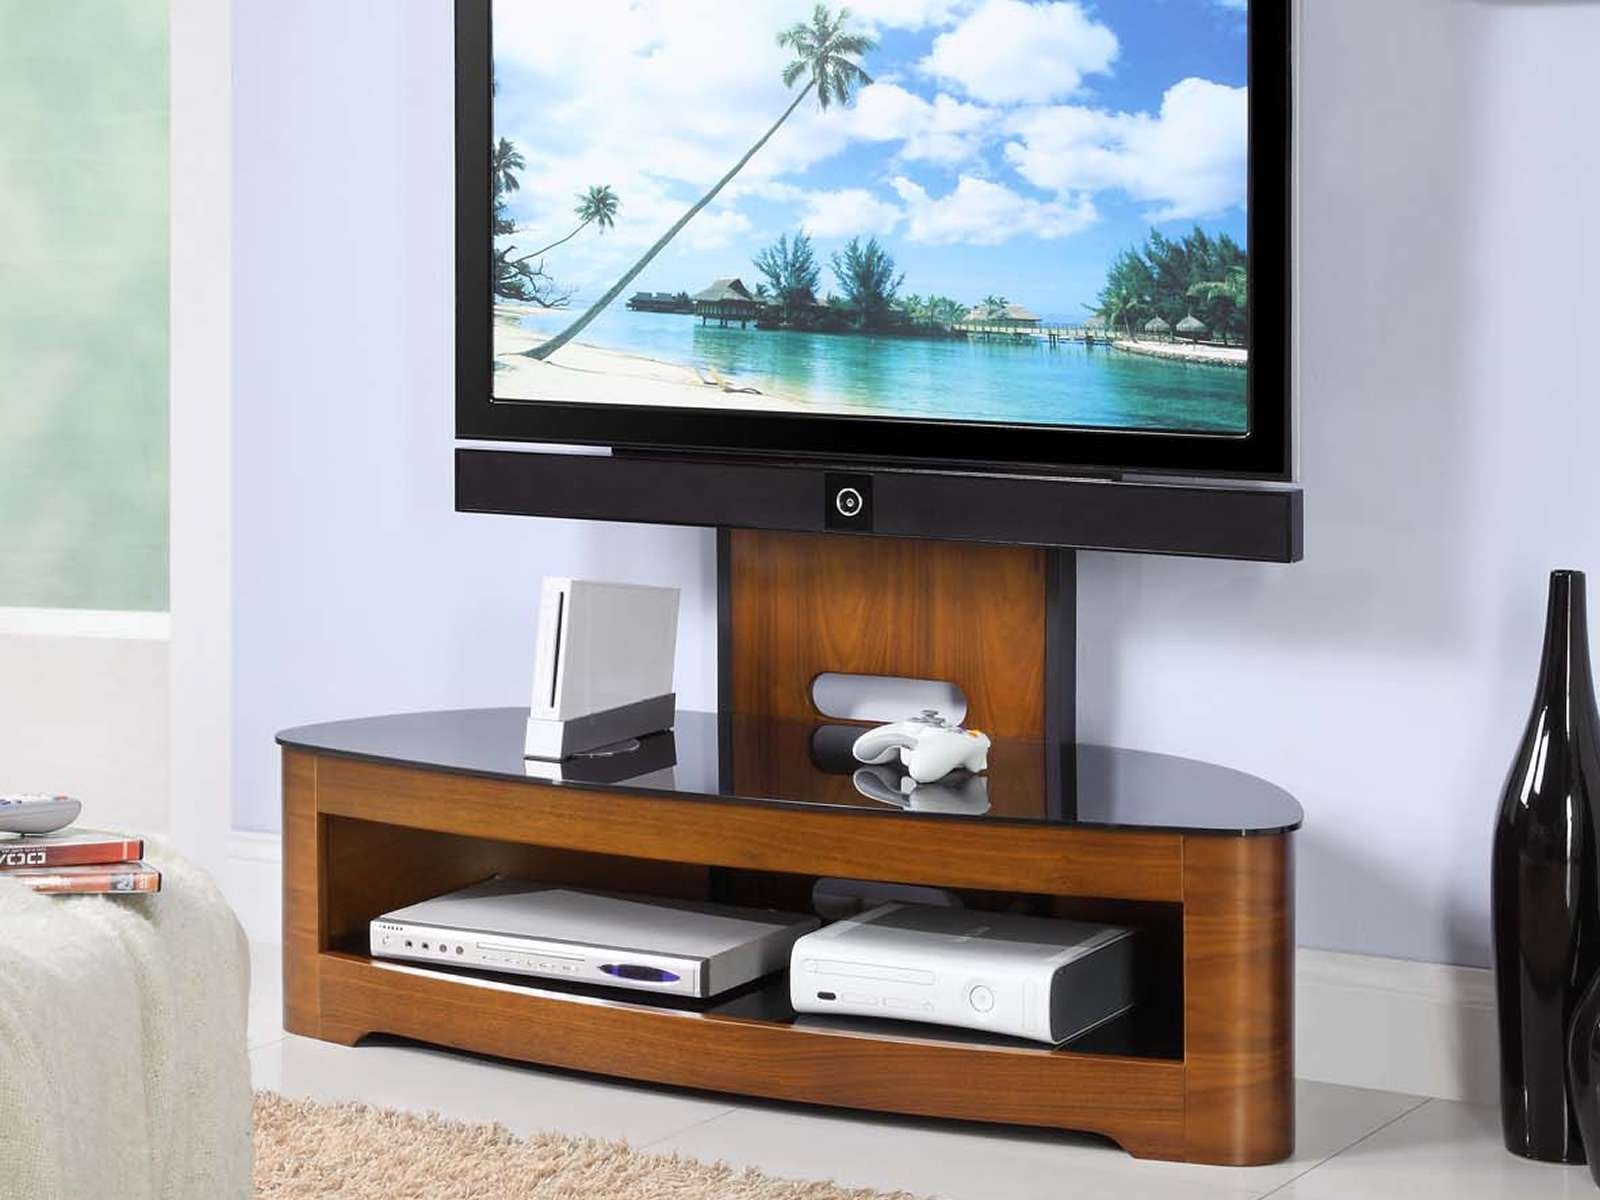 Home Decor: Bautiful Tv Stands With Flat Panel Mounts Combine Regarding Unique Tv Stands For Flat Screens (View 2 of 15)